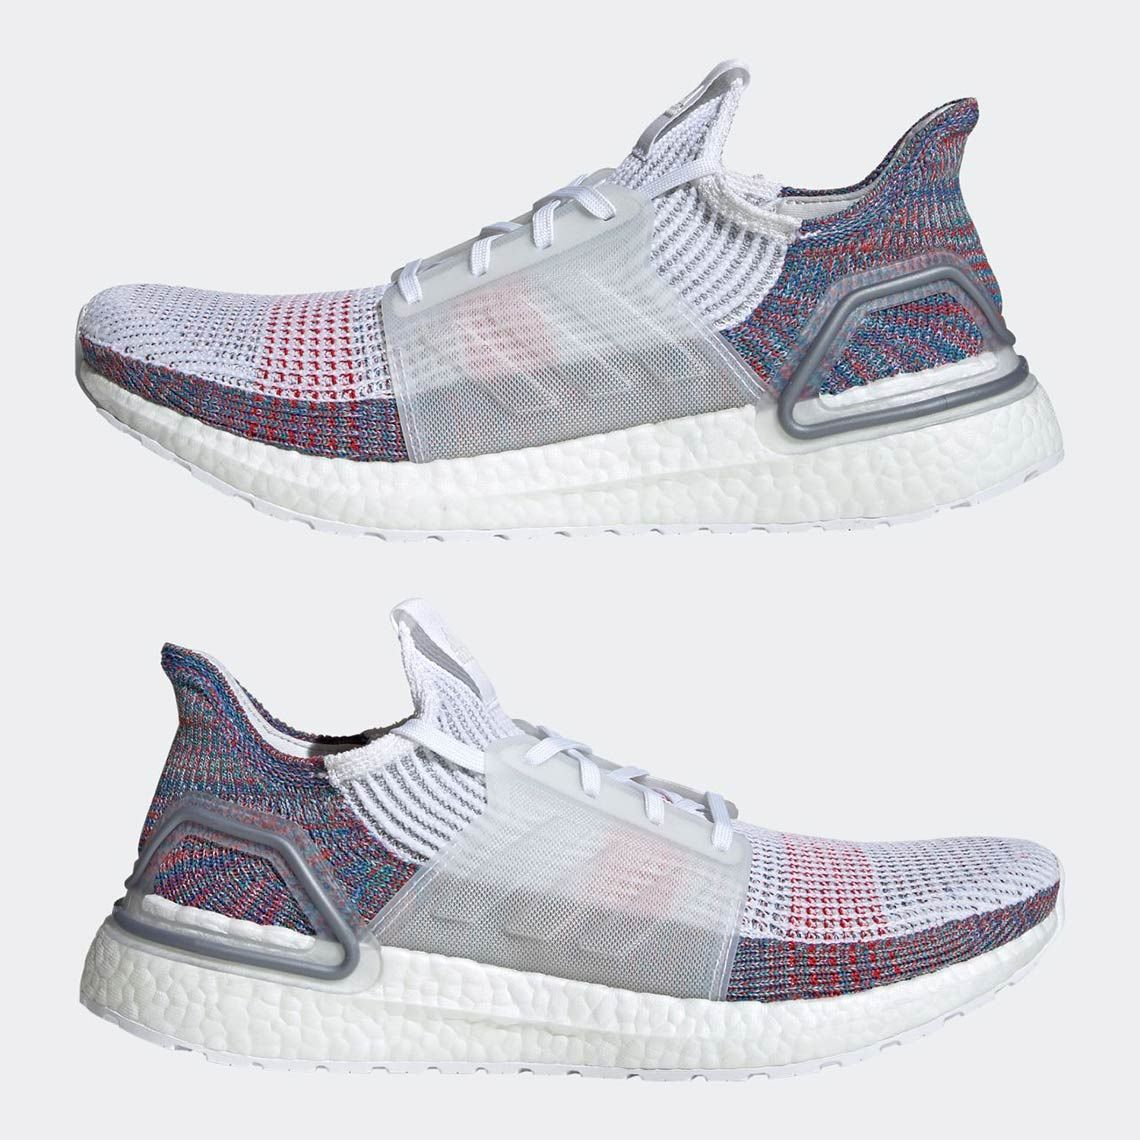 Adidas Ultra Boost 2019 White and Multi color Primeknit 360